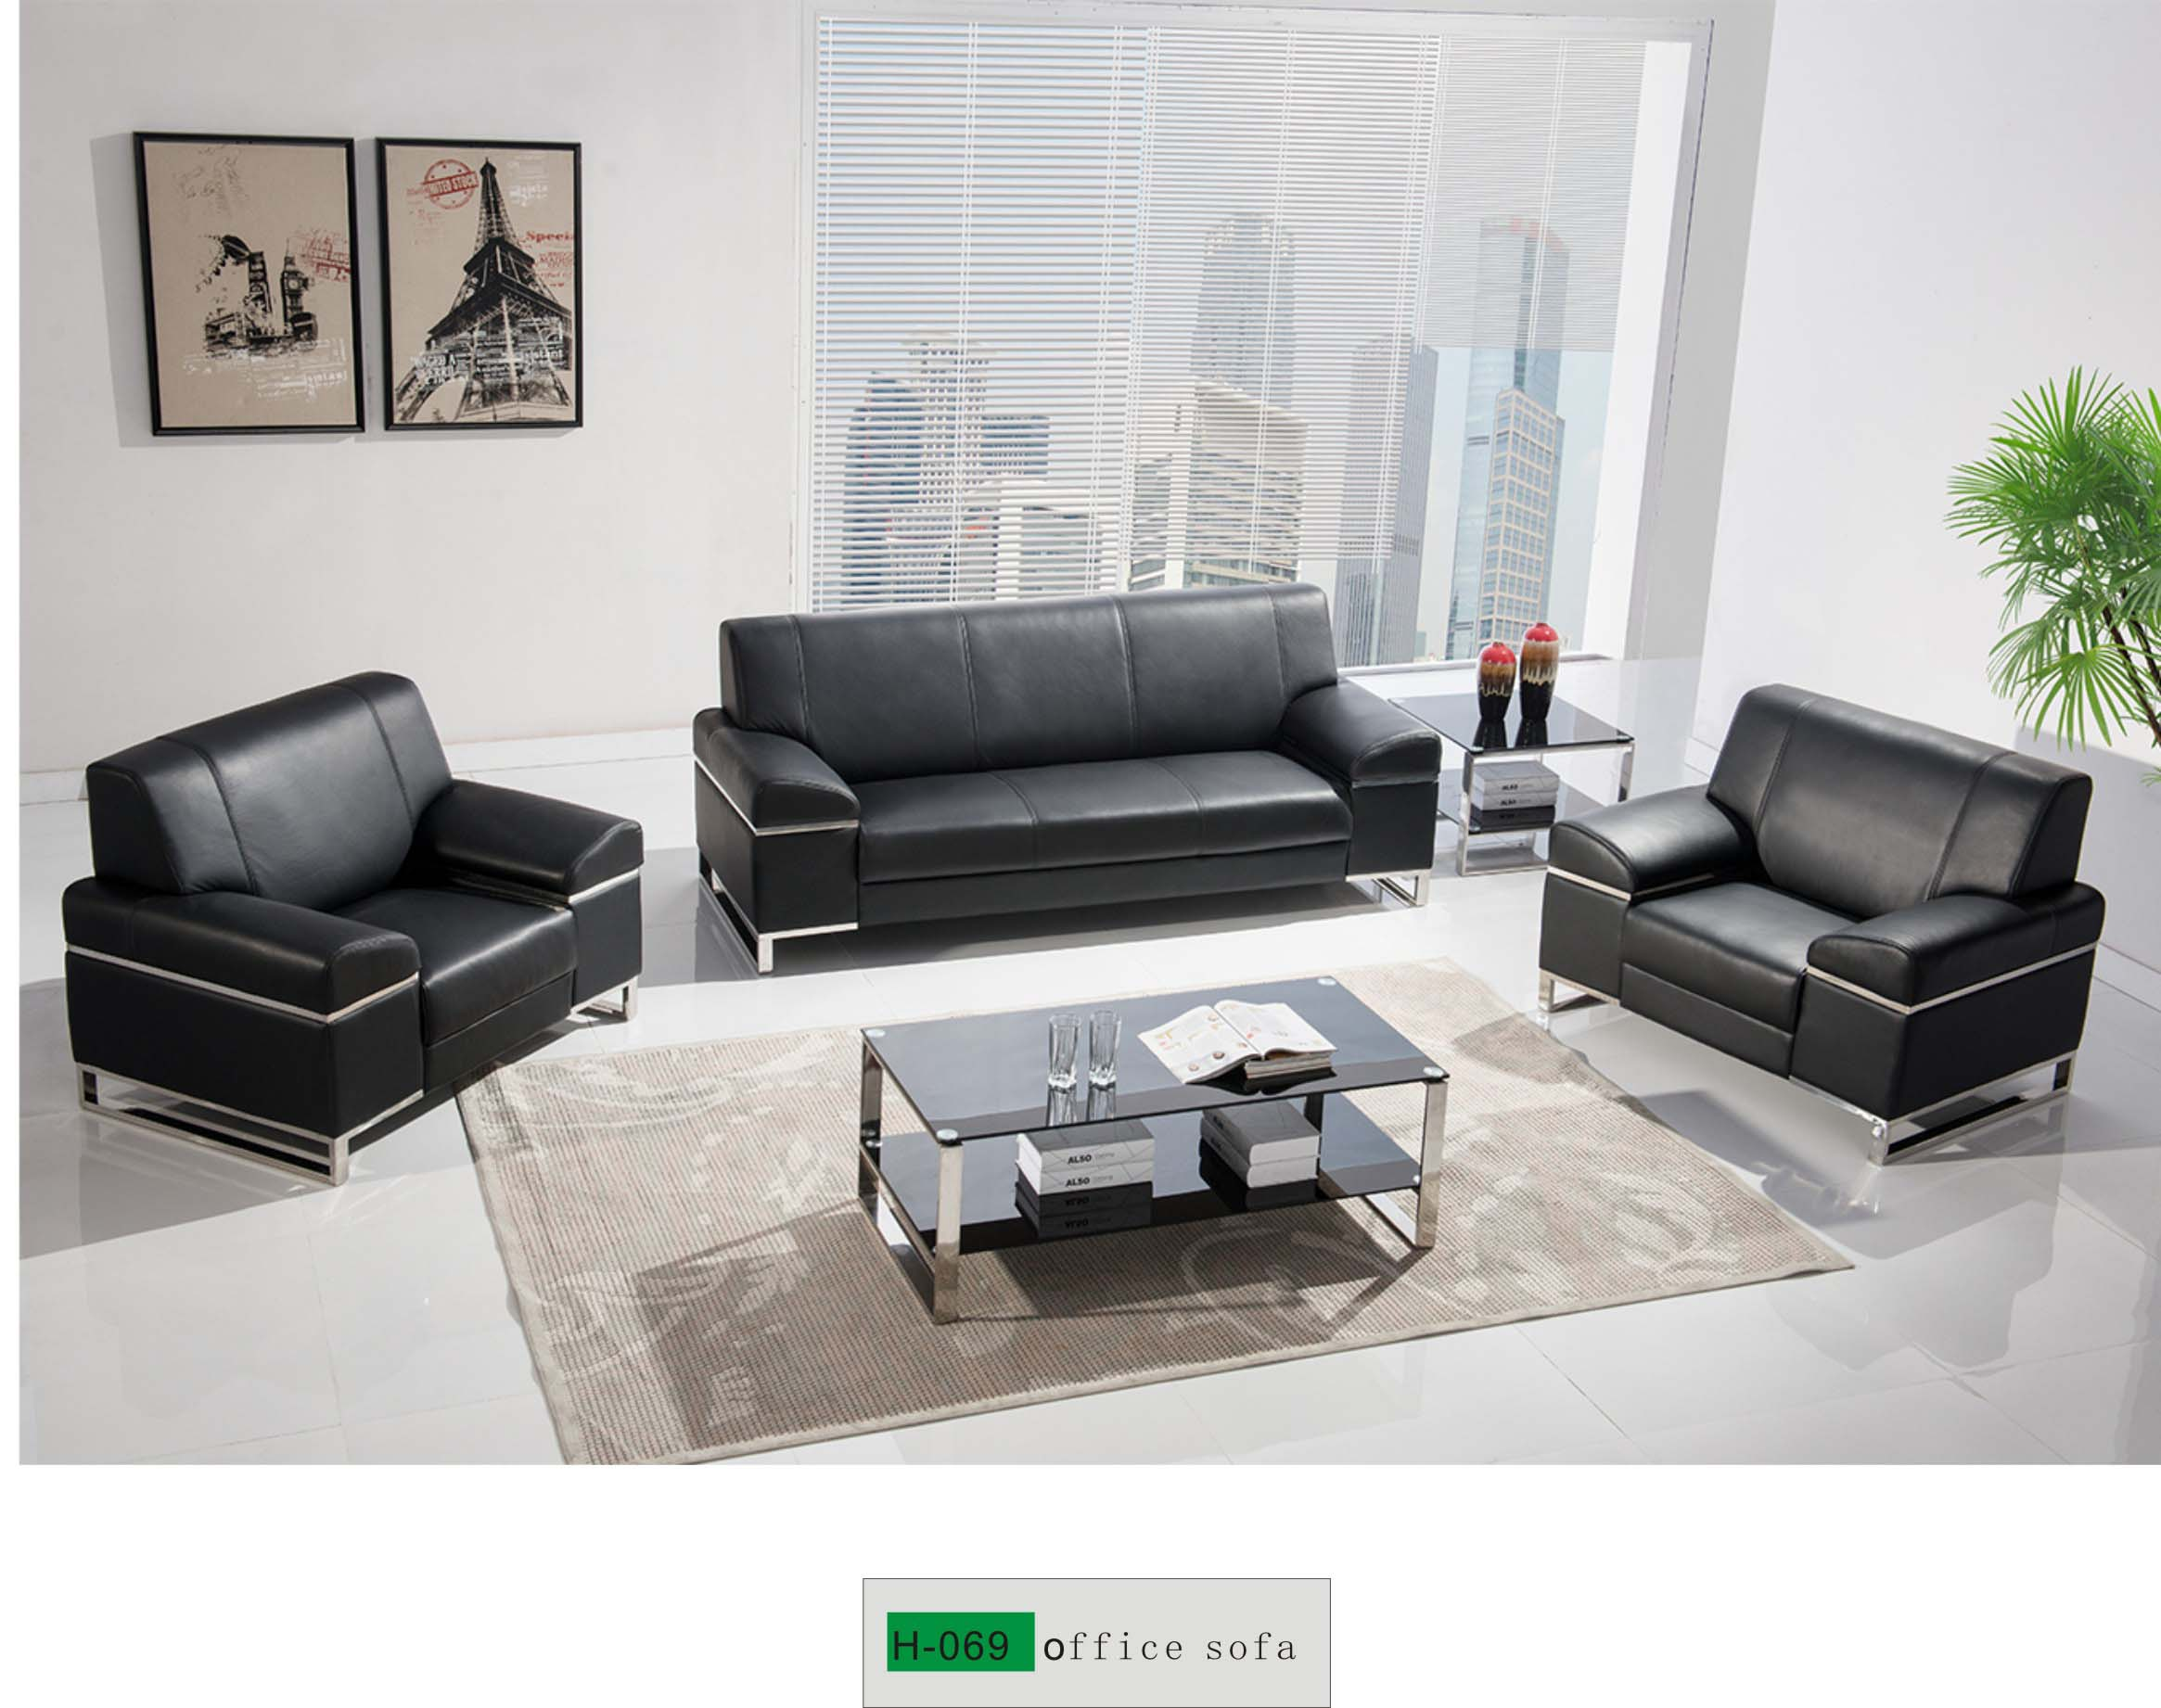 Best Sleeper Sofa for Office H-069 - Buy home office with sleeper ...